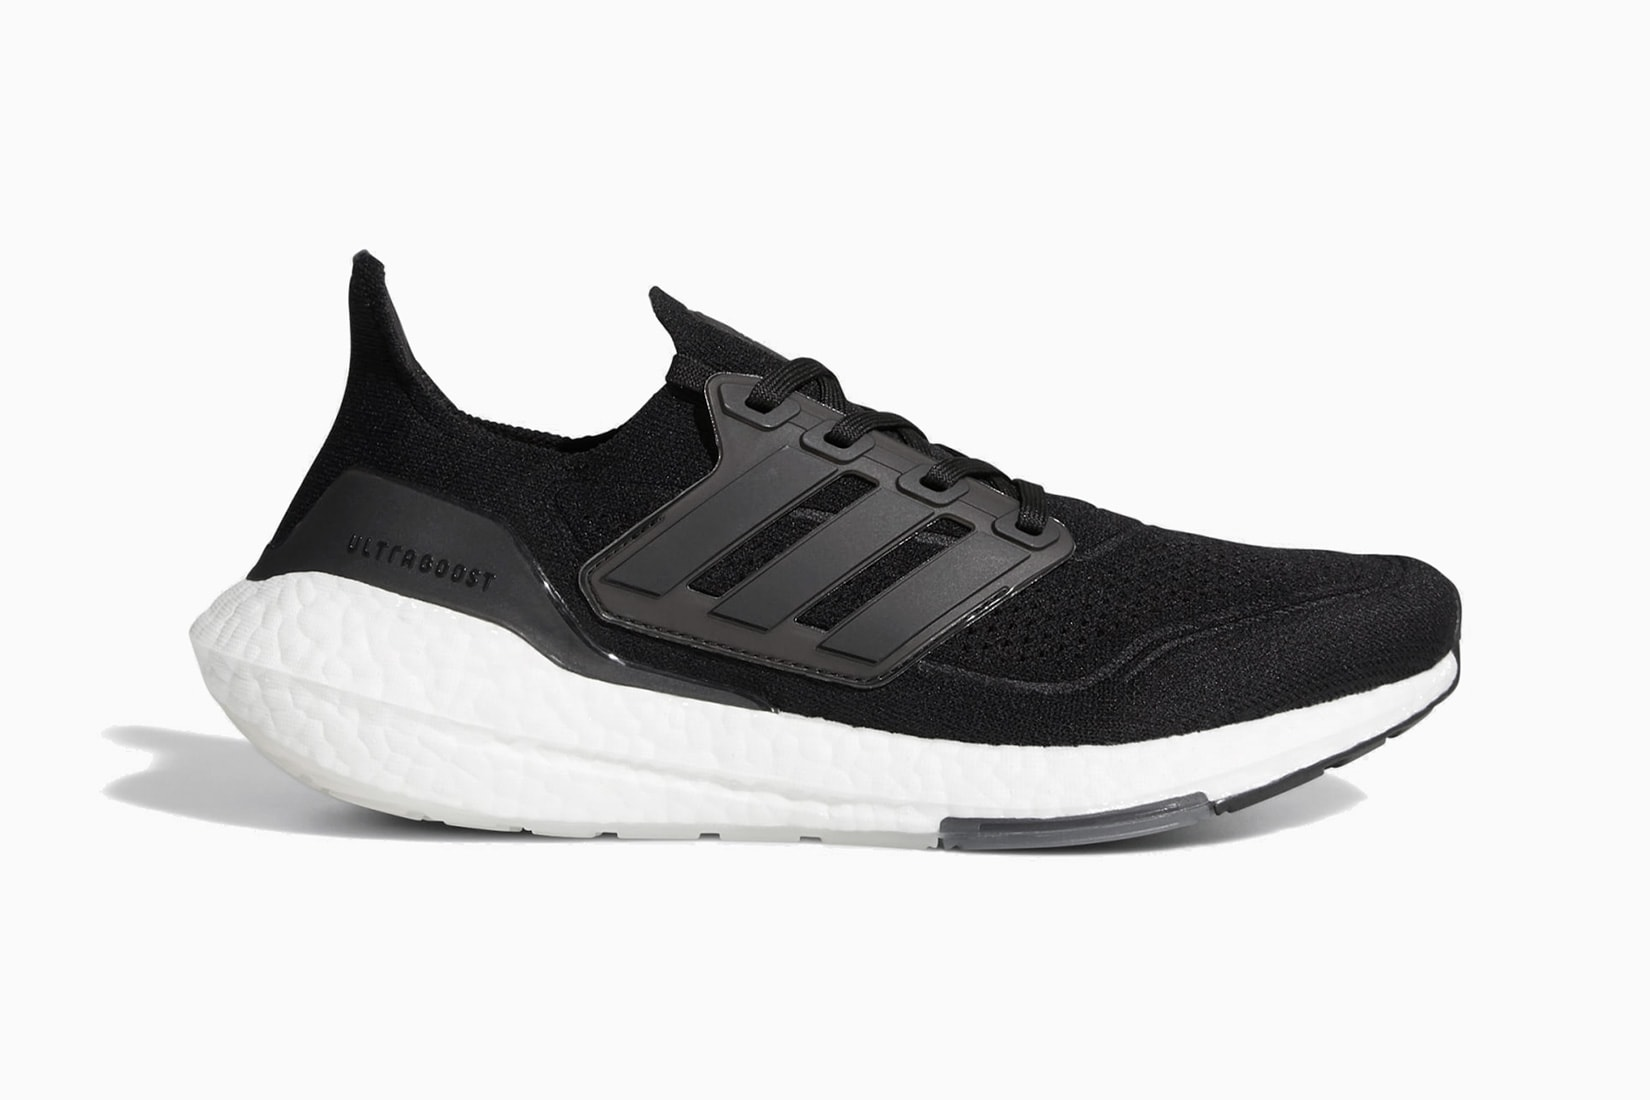 most comfortable men sneakers adidas ultraboost 21 review - Luxe Digital